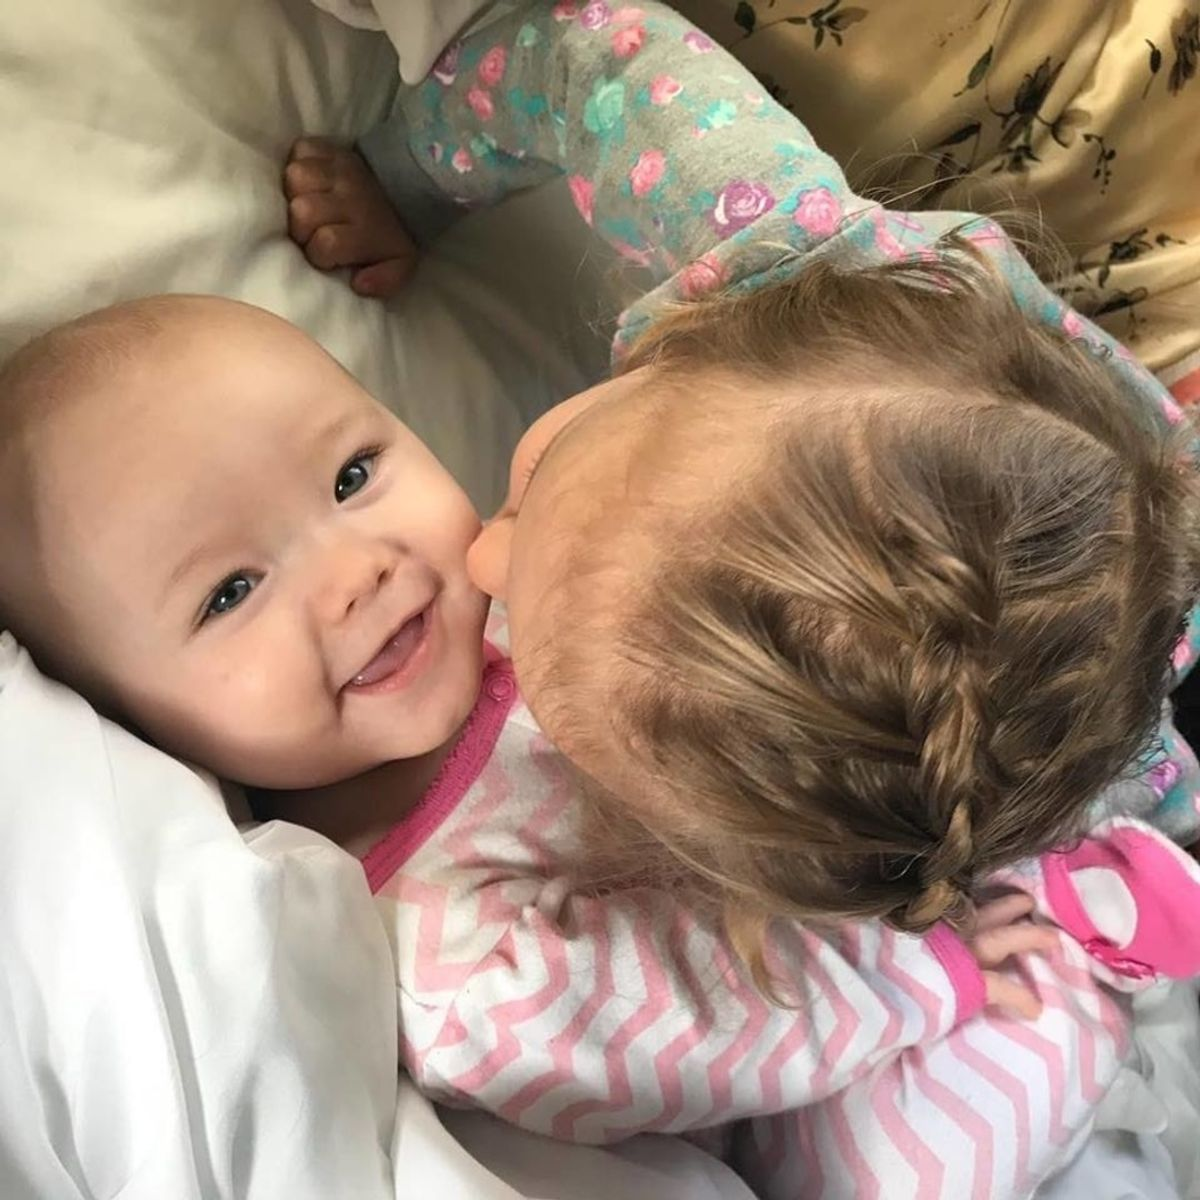 Raising Babies Vegan Is NOT Neglectful, It's Done Out Of Love